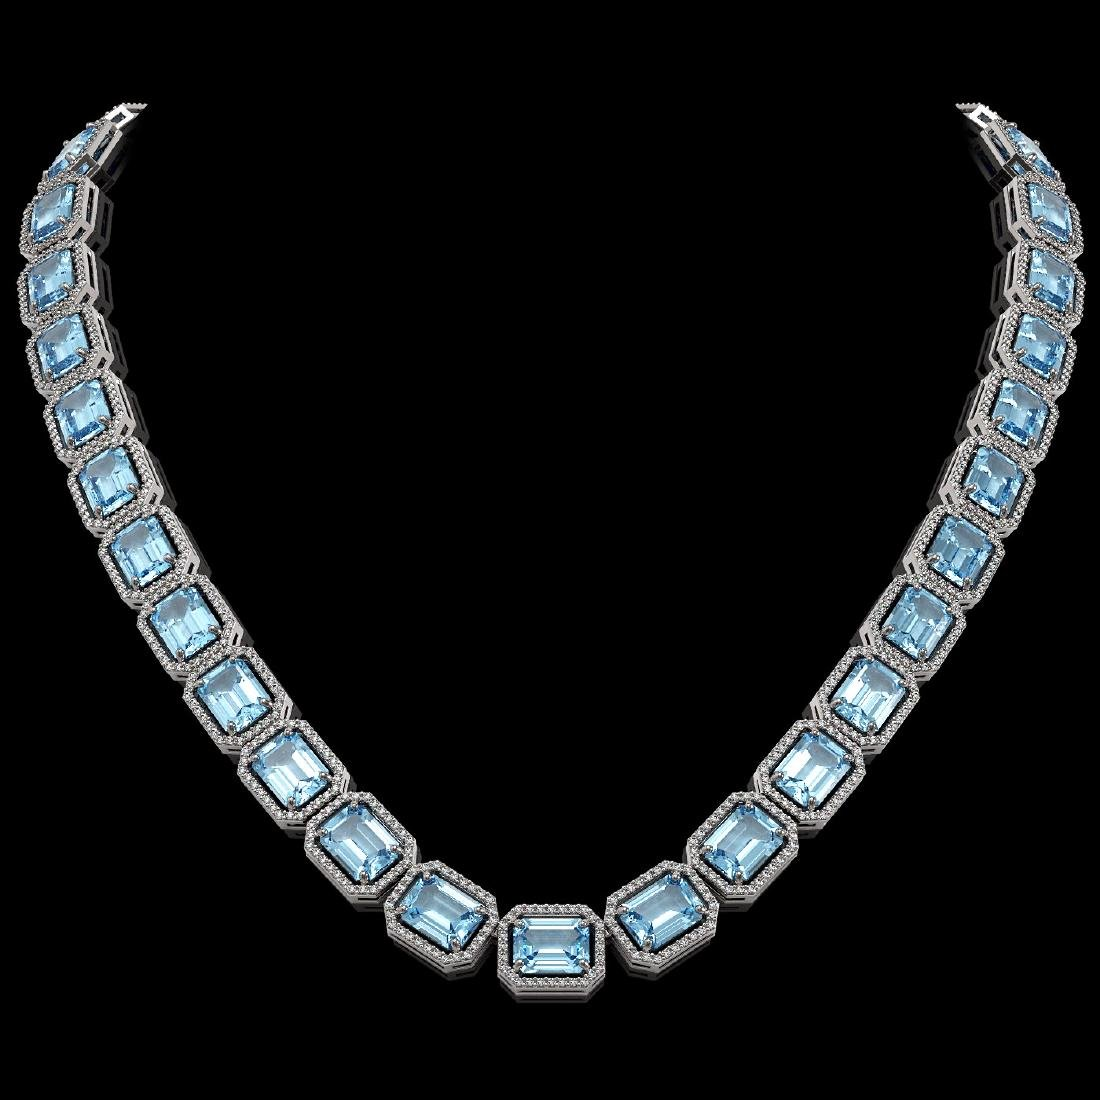 80.98 CTW Aquamarine & Diamond Halo Necklace 10K White